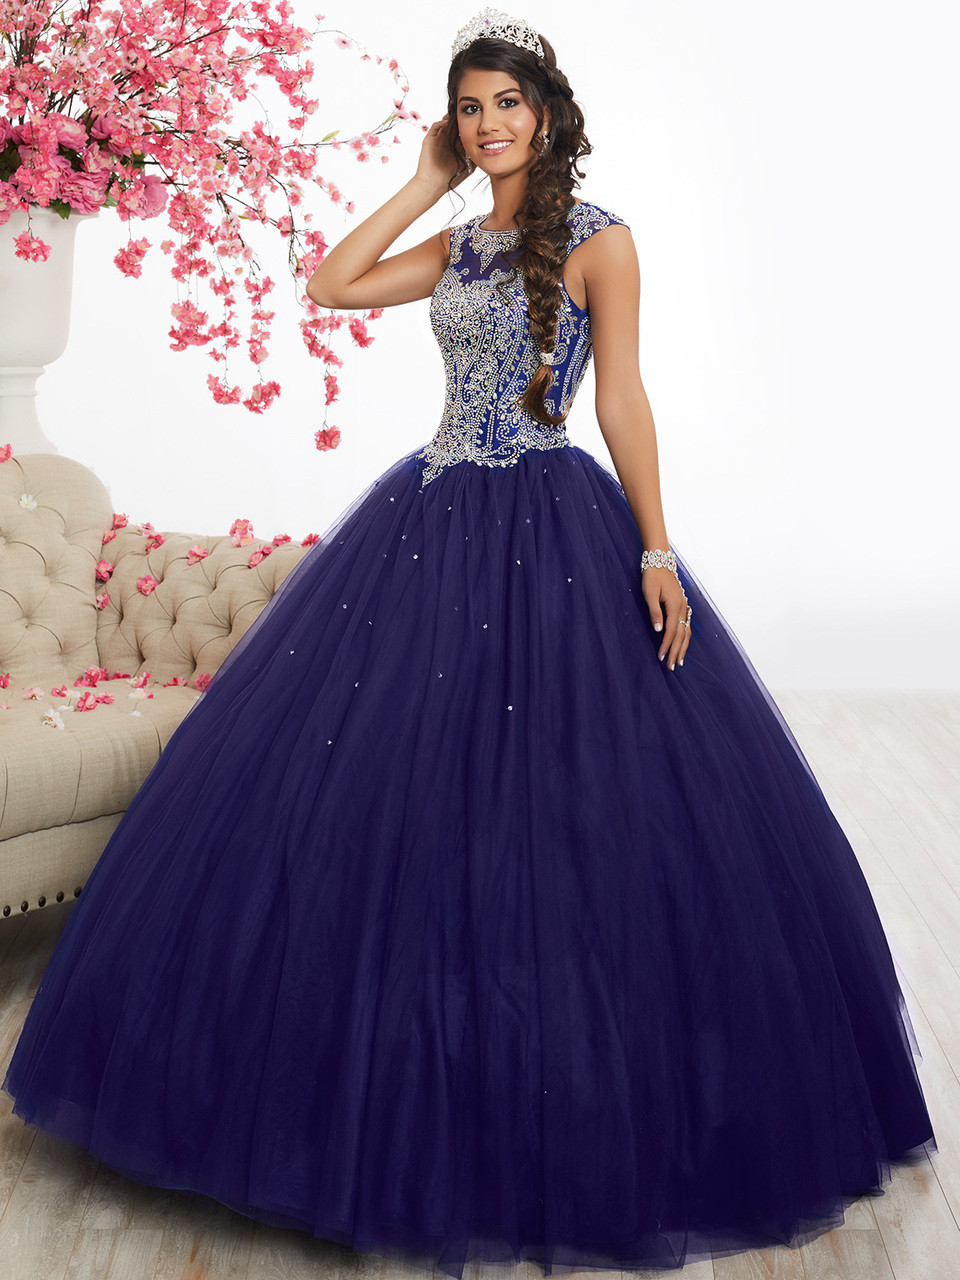 7c7e9d3493a royal purple quinceanera dress with beaded illusion cap sleeves and plain  tulle skirt by fiesta 56338